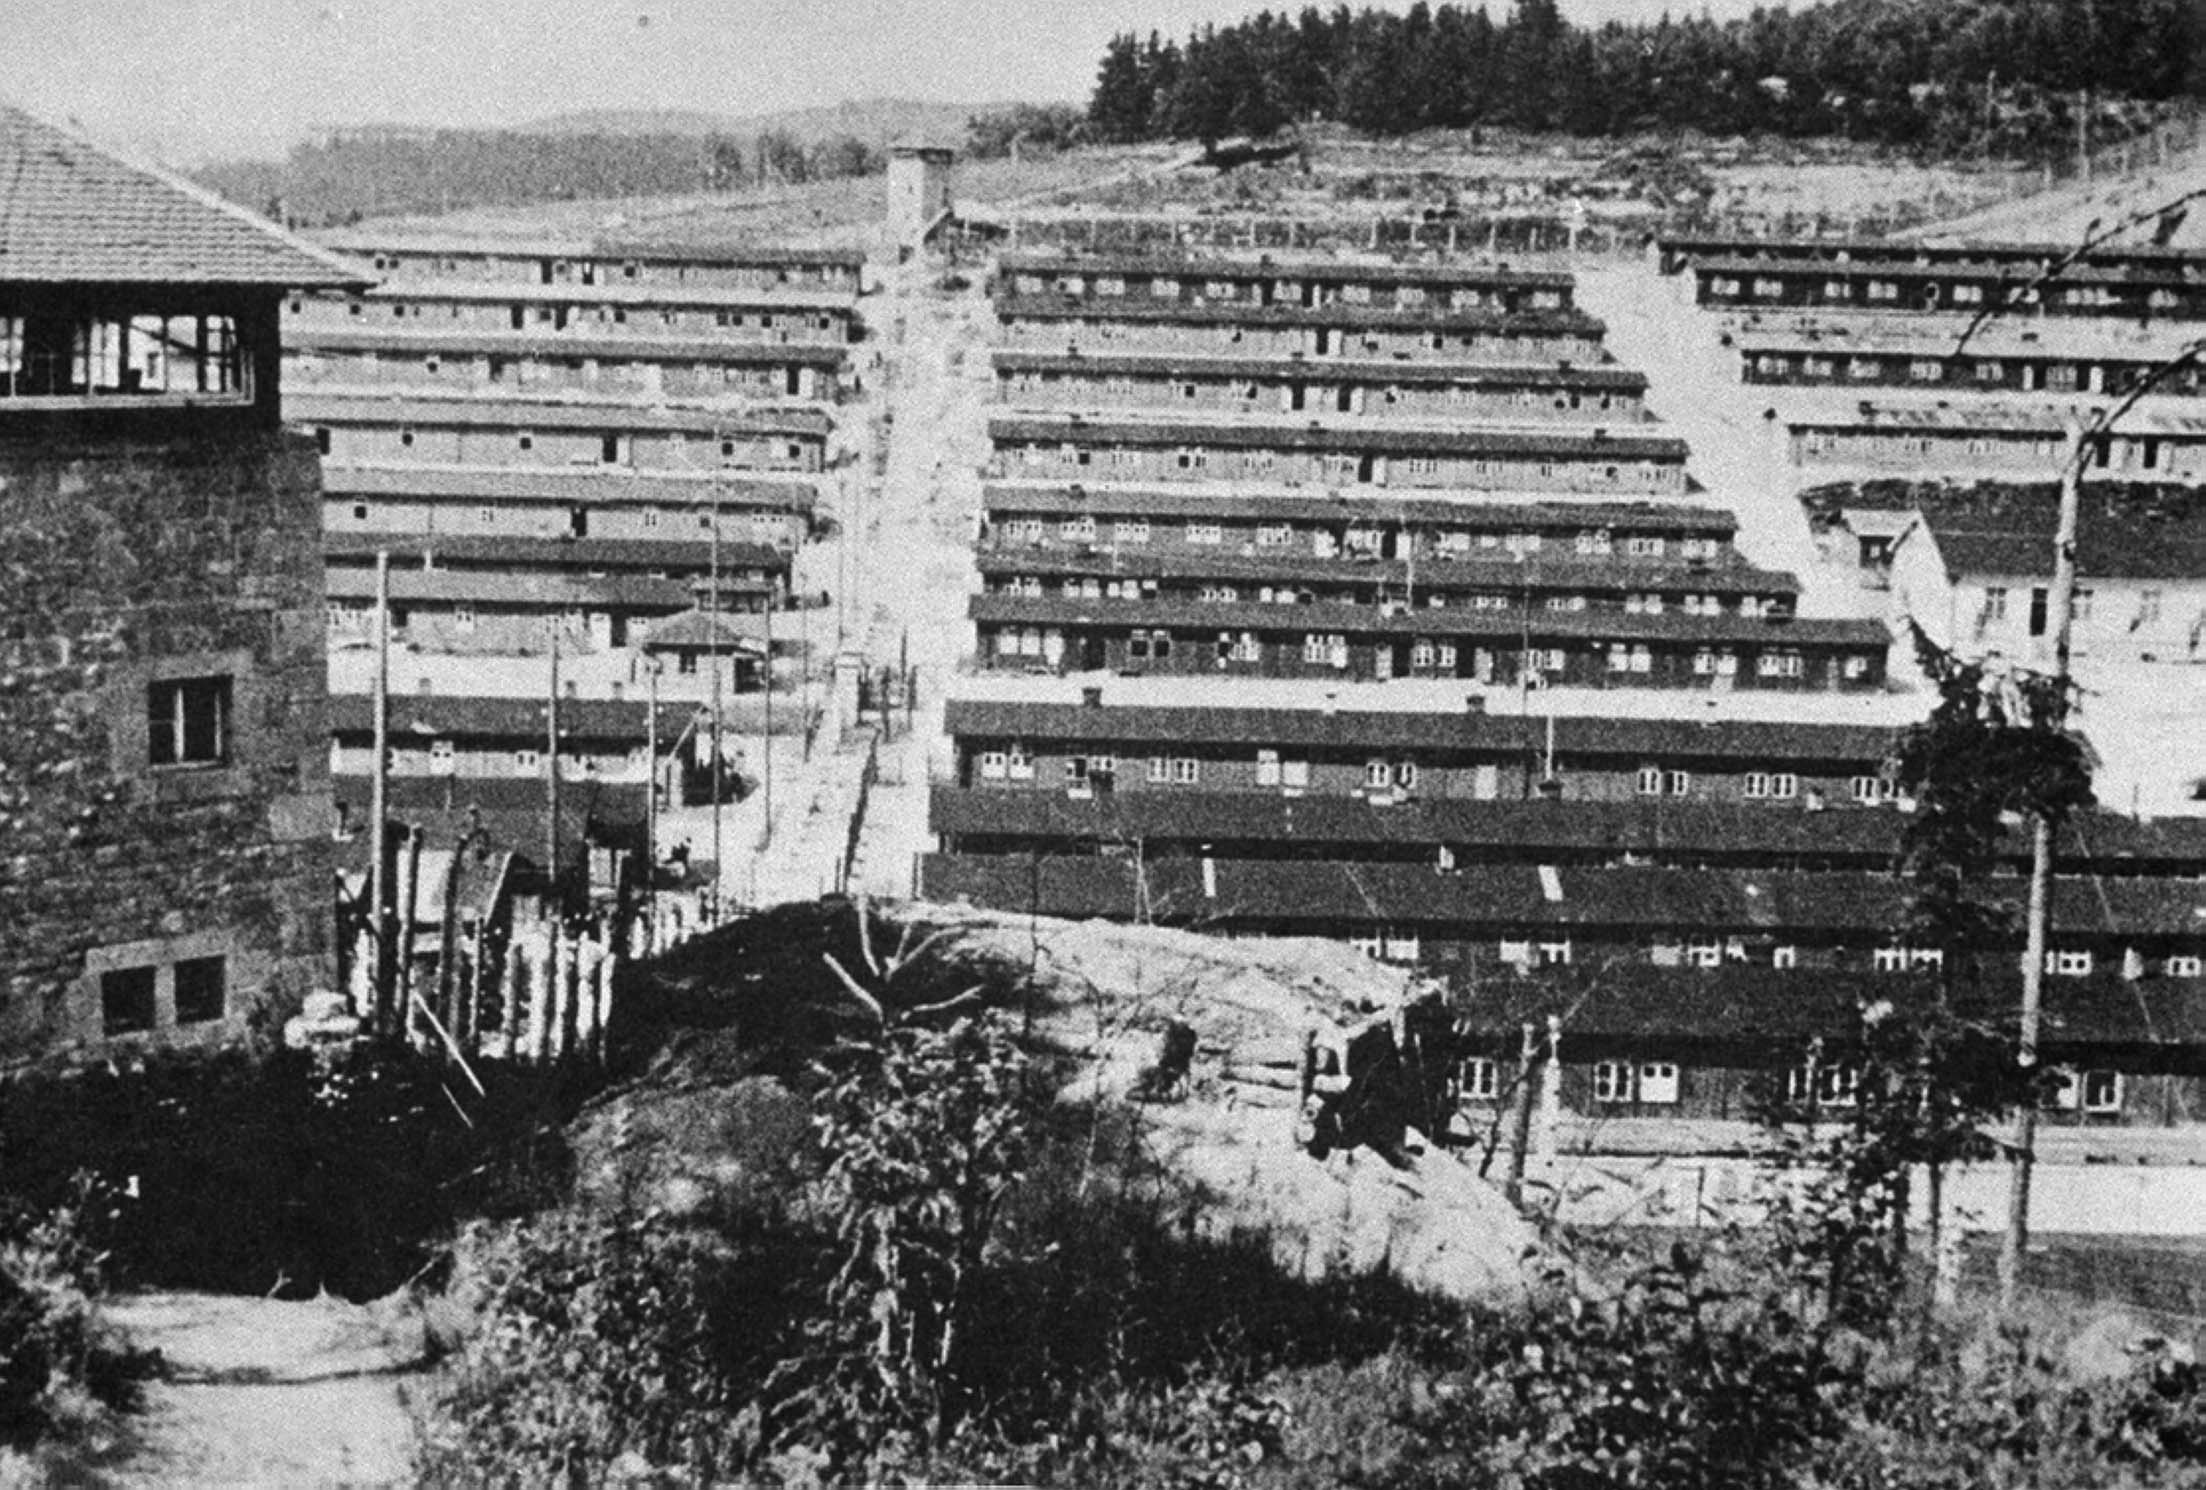 KZ Flossenbürg im April 1945 bei der Befreiung durch die S Army 99th Infantry Division US Army photo © commons wikimedia